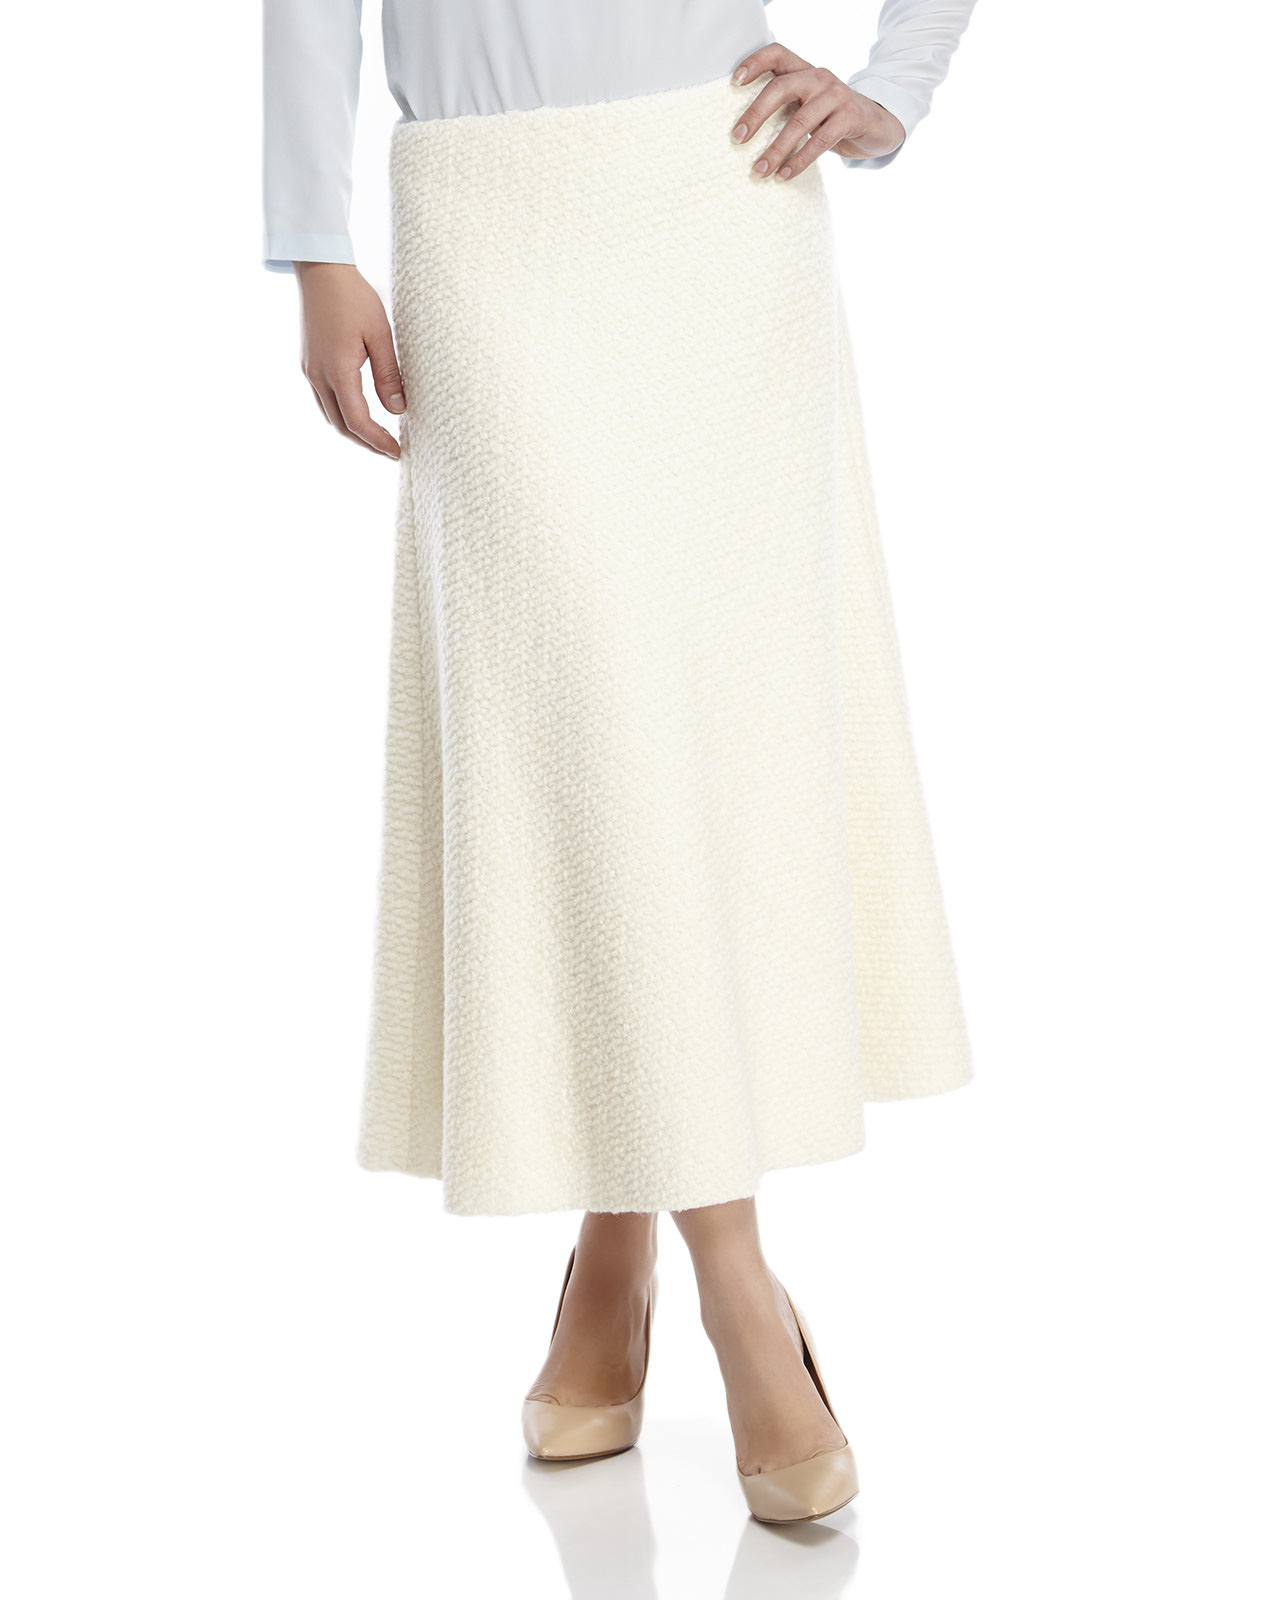 arrives big discount of 2019 vast selection Raoul Ivory Amelia Midi Skirt in White - Lyst